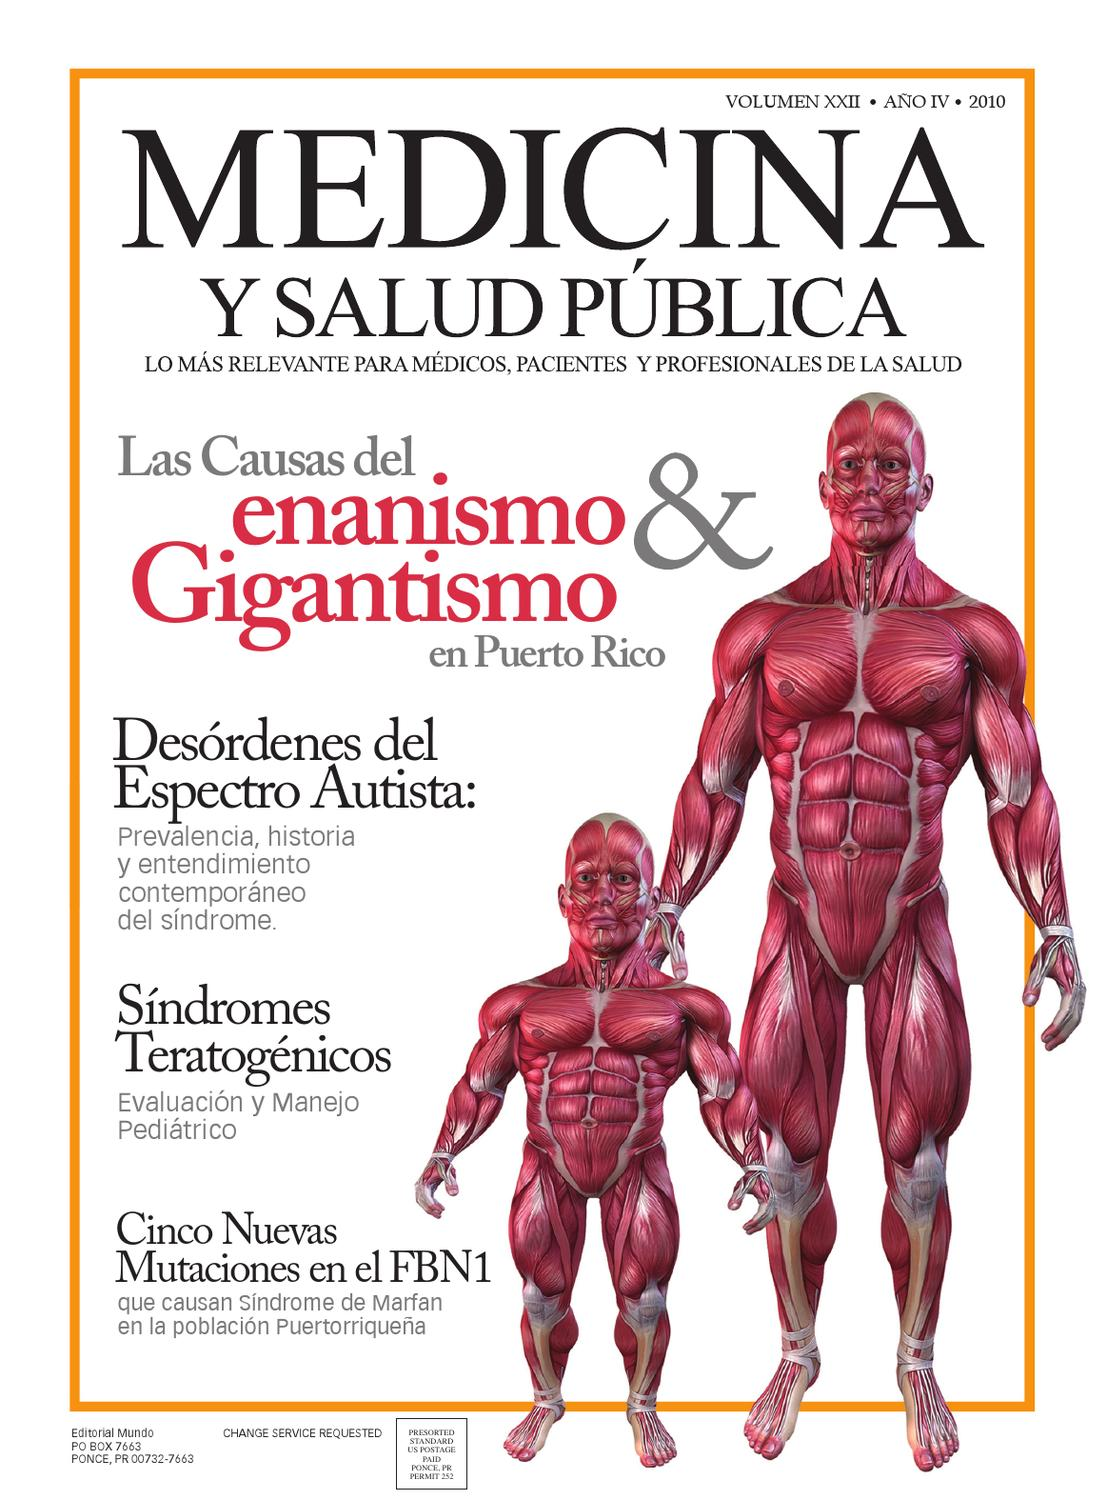 Medicina Y Salud Pública VOL. XXII by Grupo Editorial Mundo - issuu